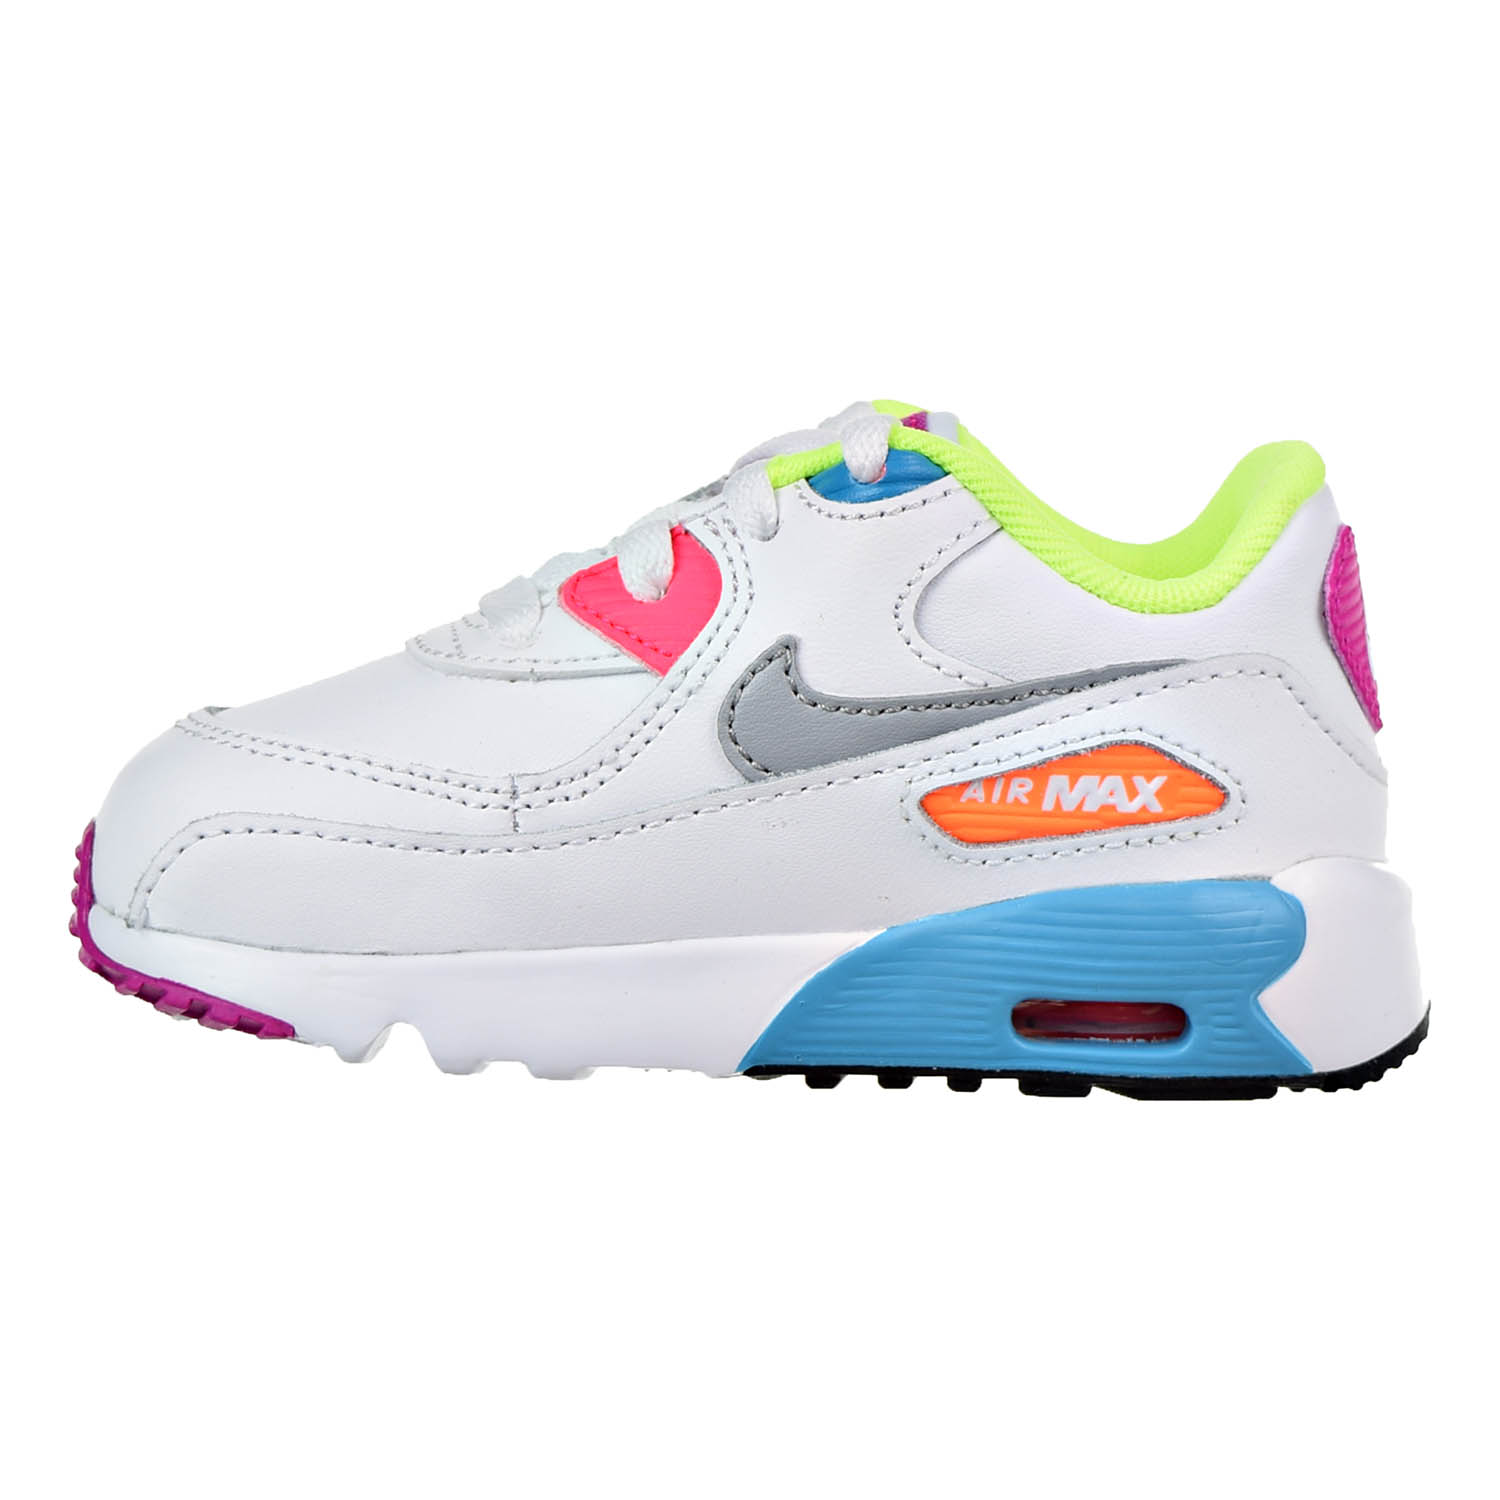 Nike Air Max 90 Leather Toddler Shoes White/Wolf Grey/Chlorine Blue  833379-102 - Walmart.com